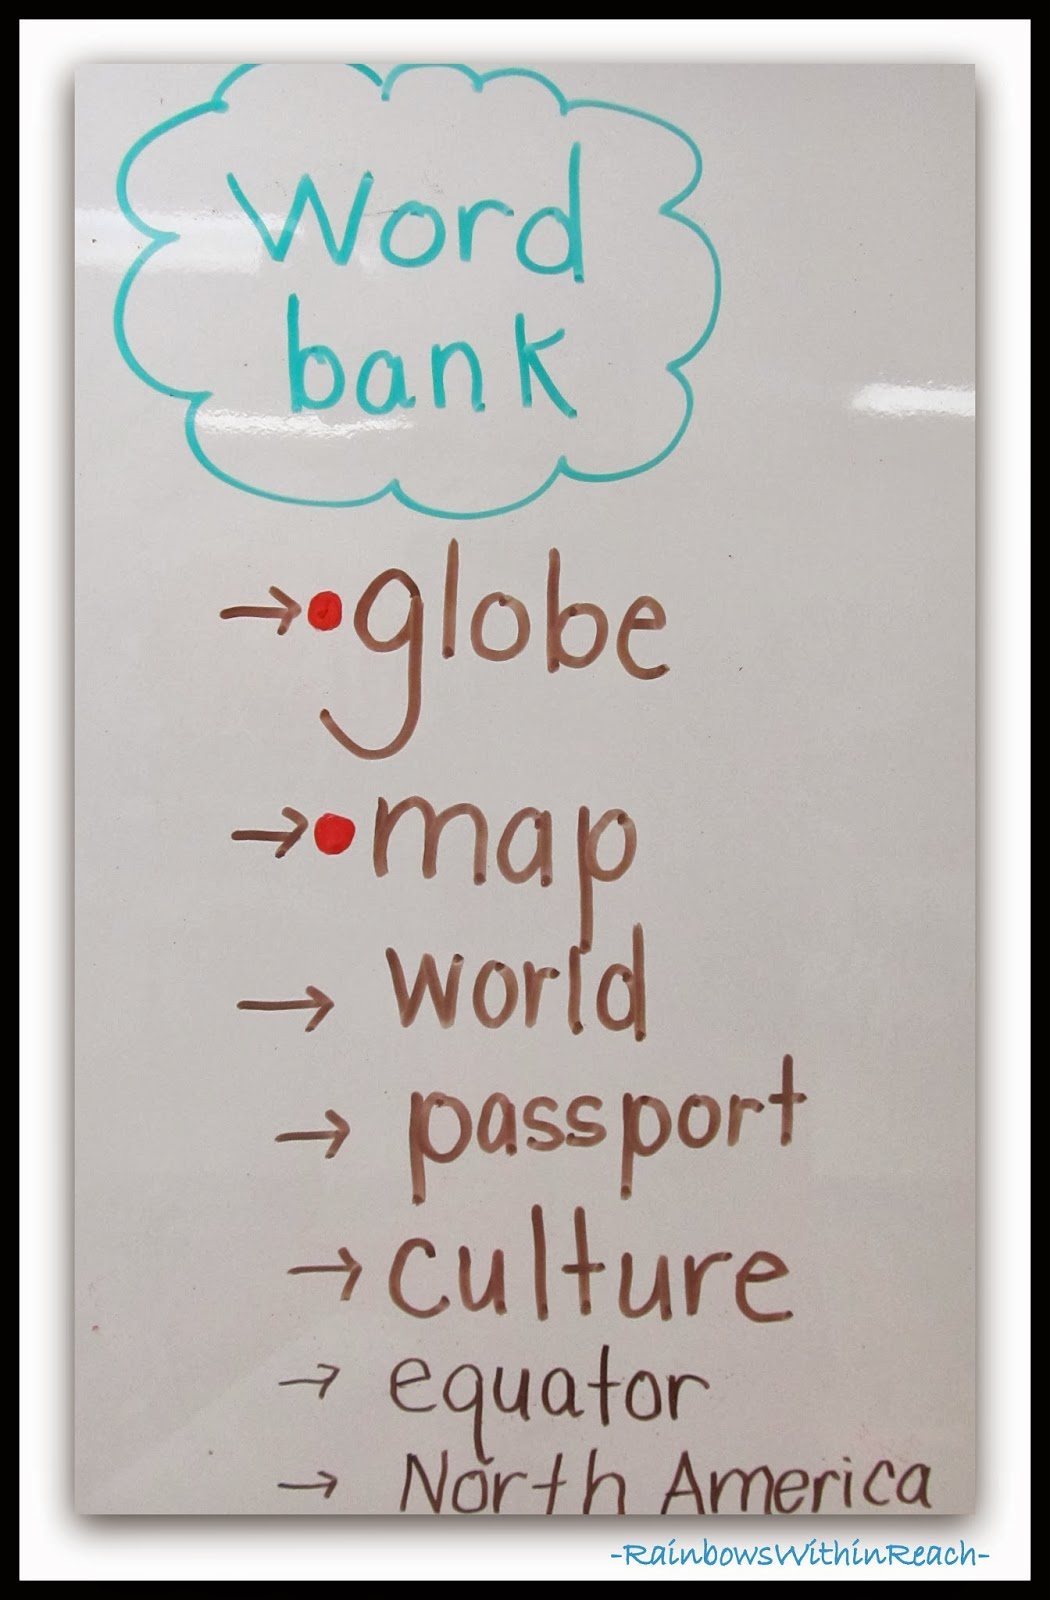 """Word Bank"" for Vocabulary Words via RainbowsWithinReach"